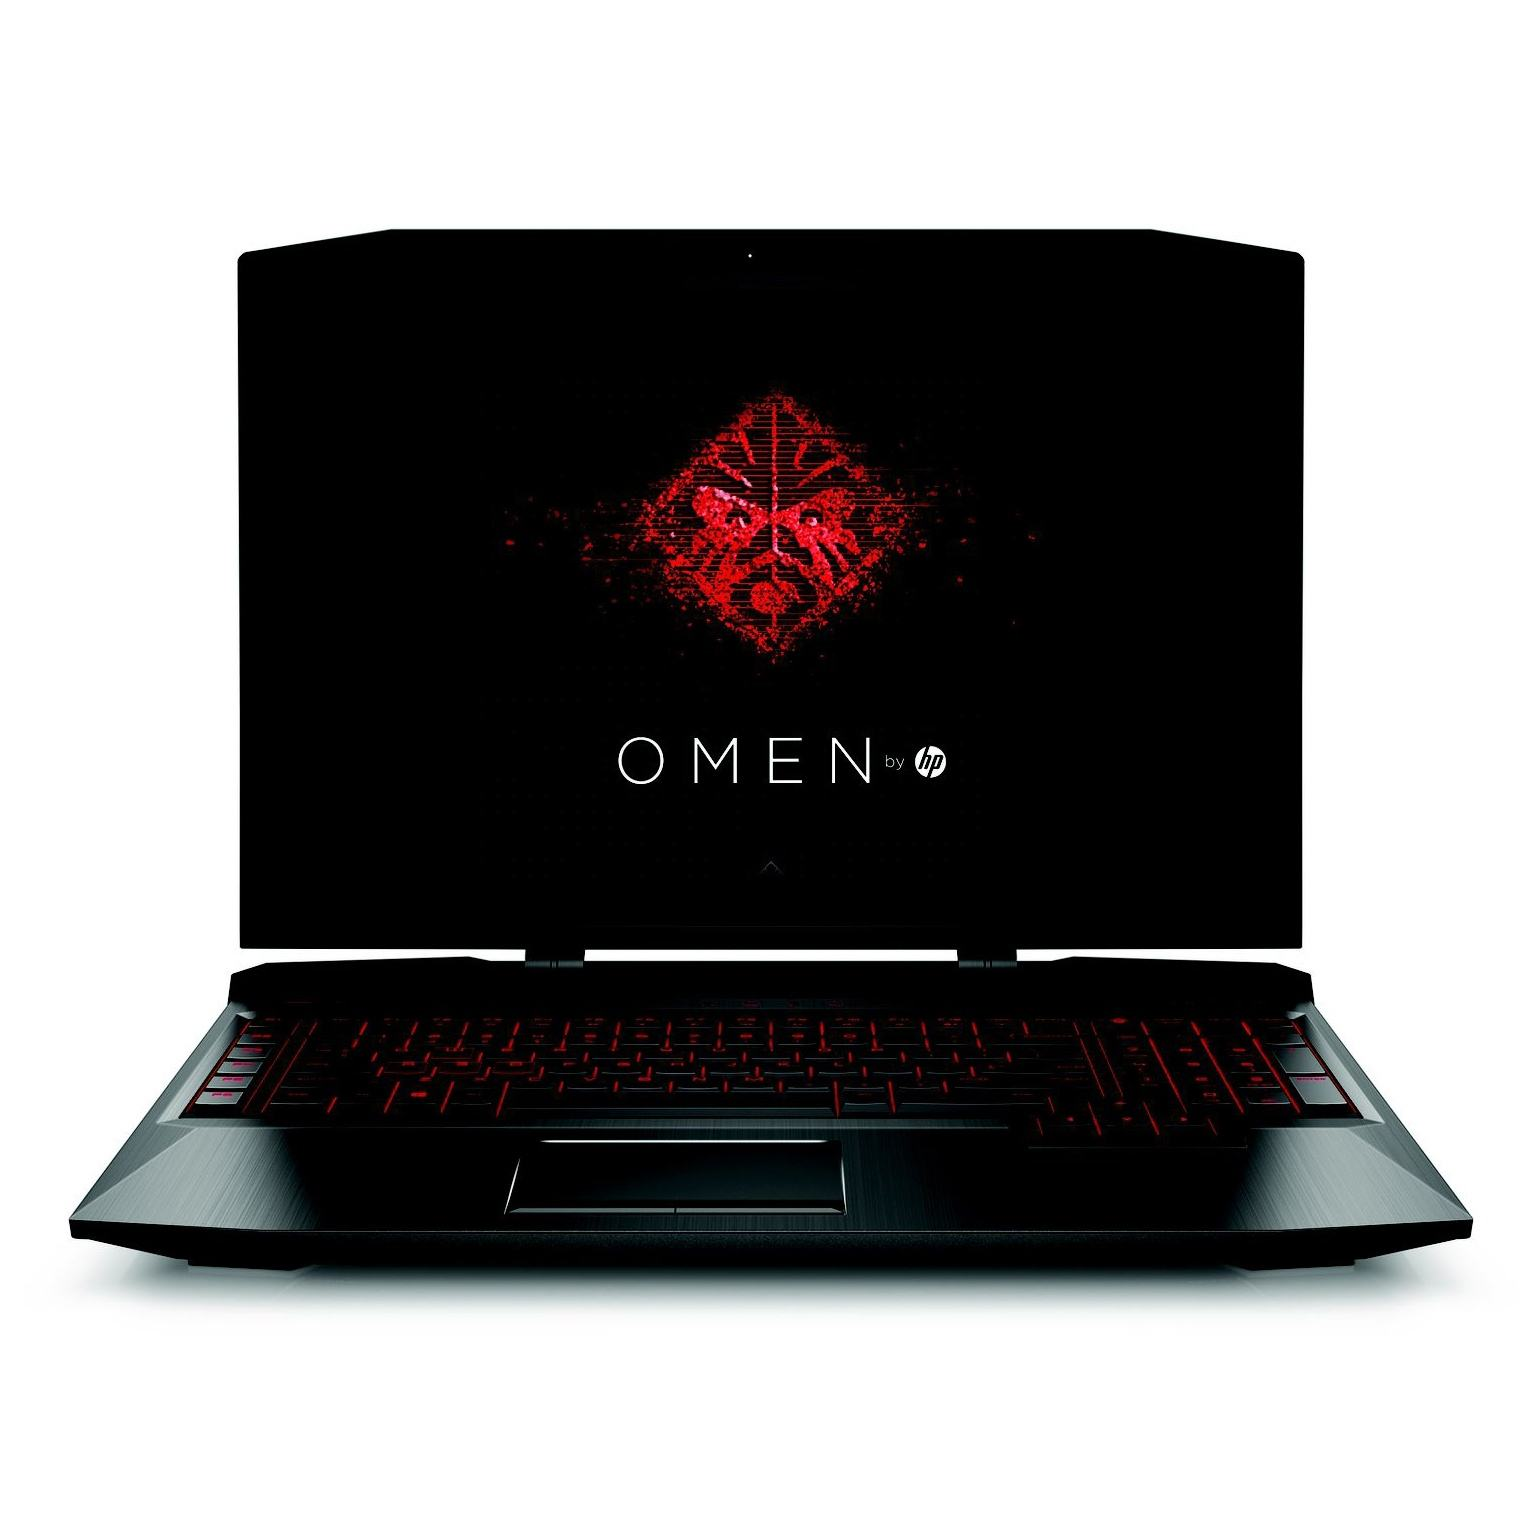 "Original and Brand New Sealed for H P OMEN X 17 GTX 1070 8GB 17.3"" Intel i7-7820HK Gaming Laptop"